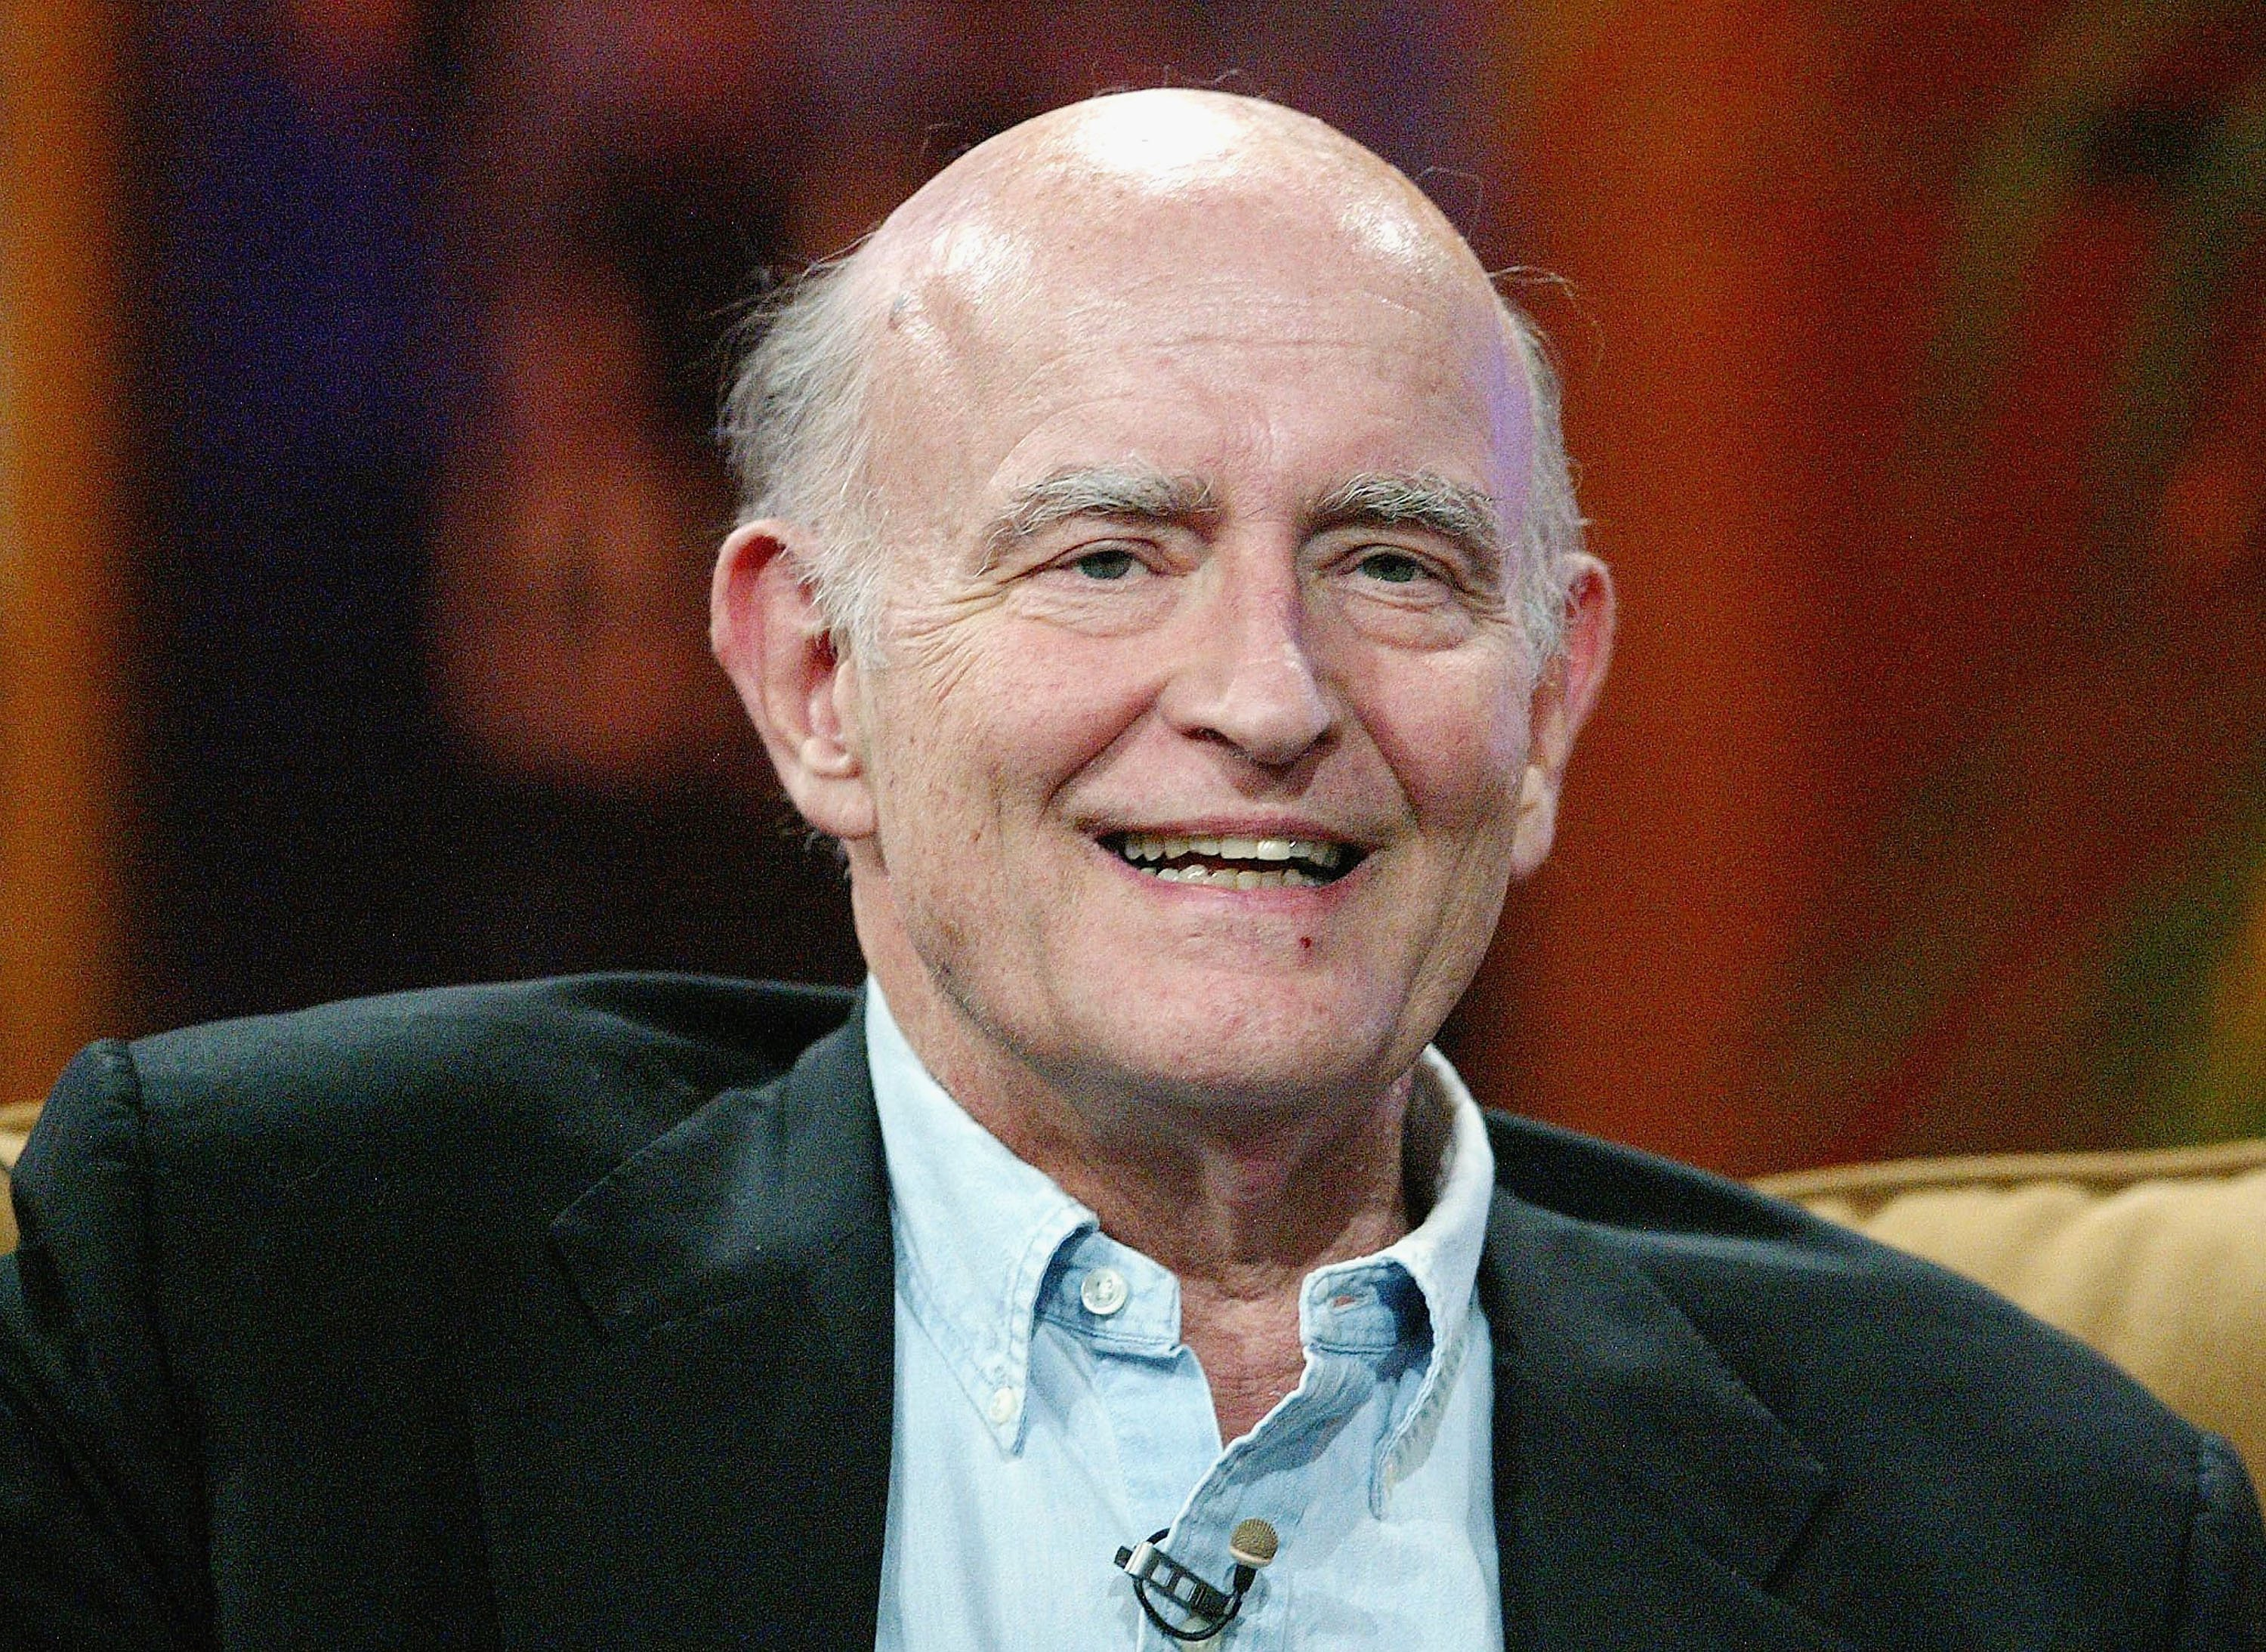 Peter Boyle speaks during the CBS 2005 Television Critics Winter Press Tour on Jan. 18, 2005 in California | Photo: Getty Images